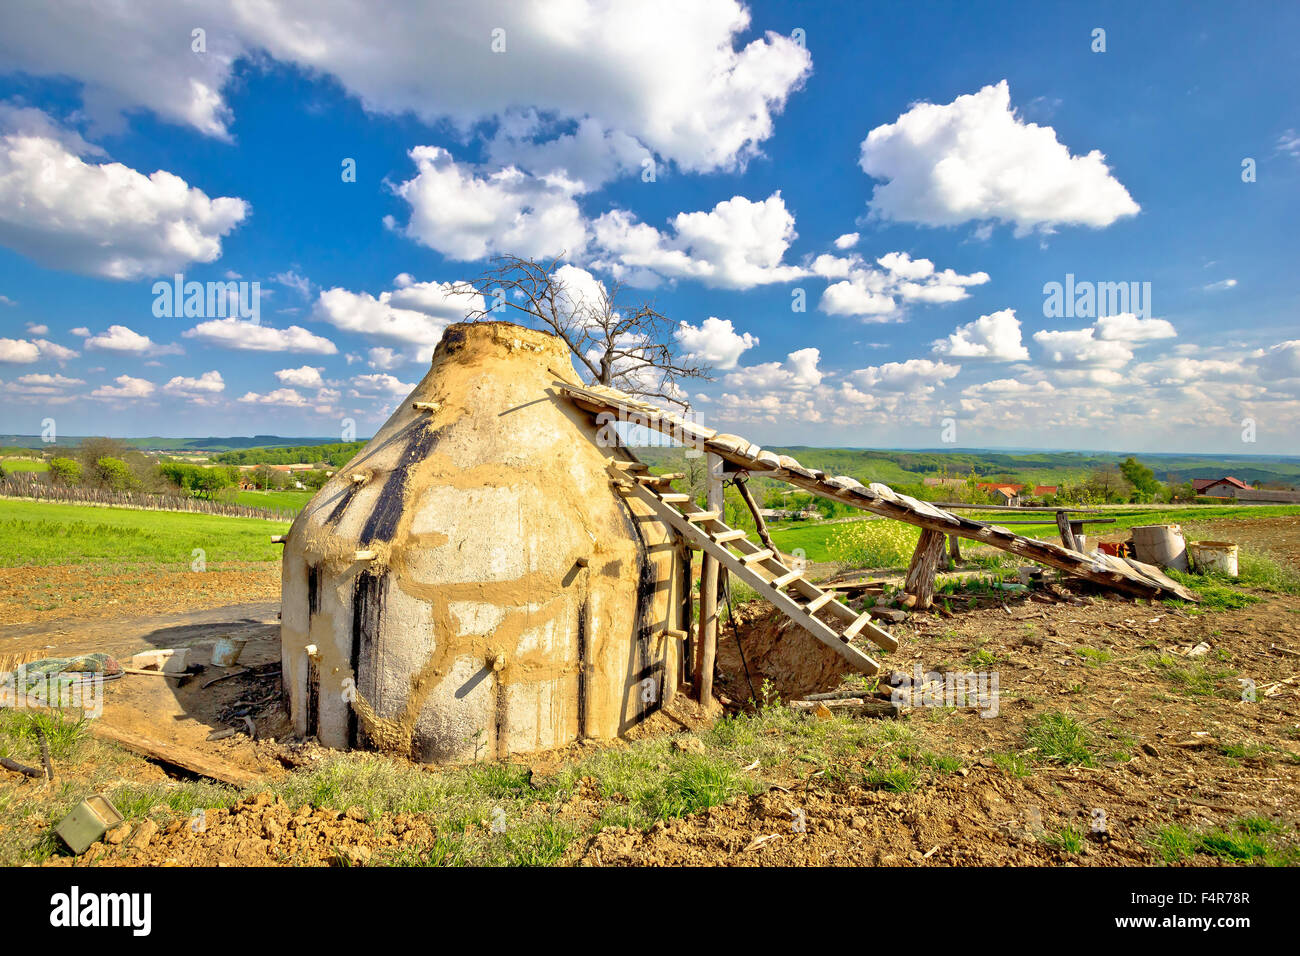 Charcoal production plant in rural region of Croatia - Stock Image